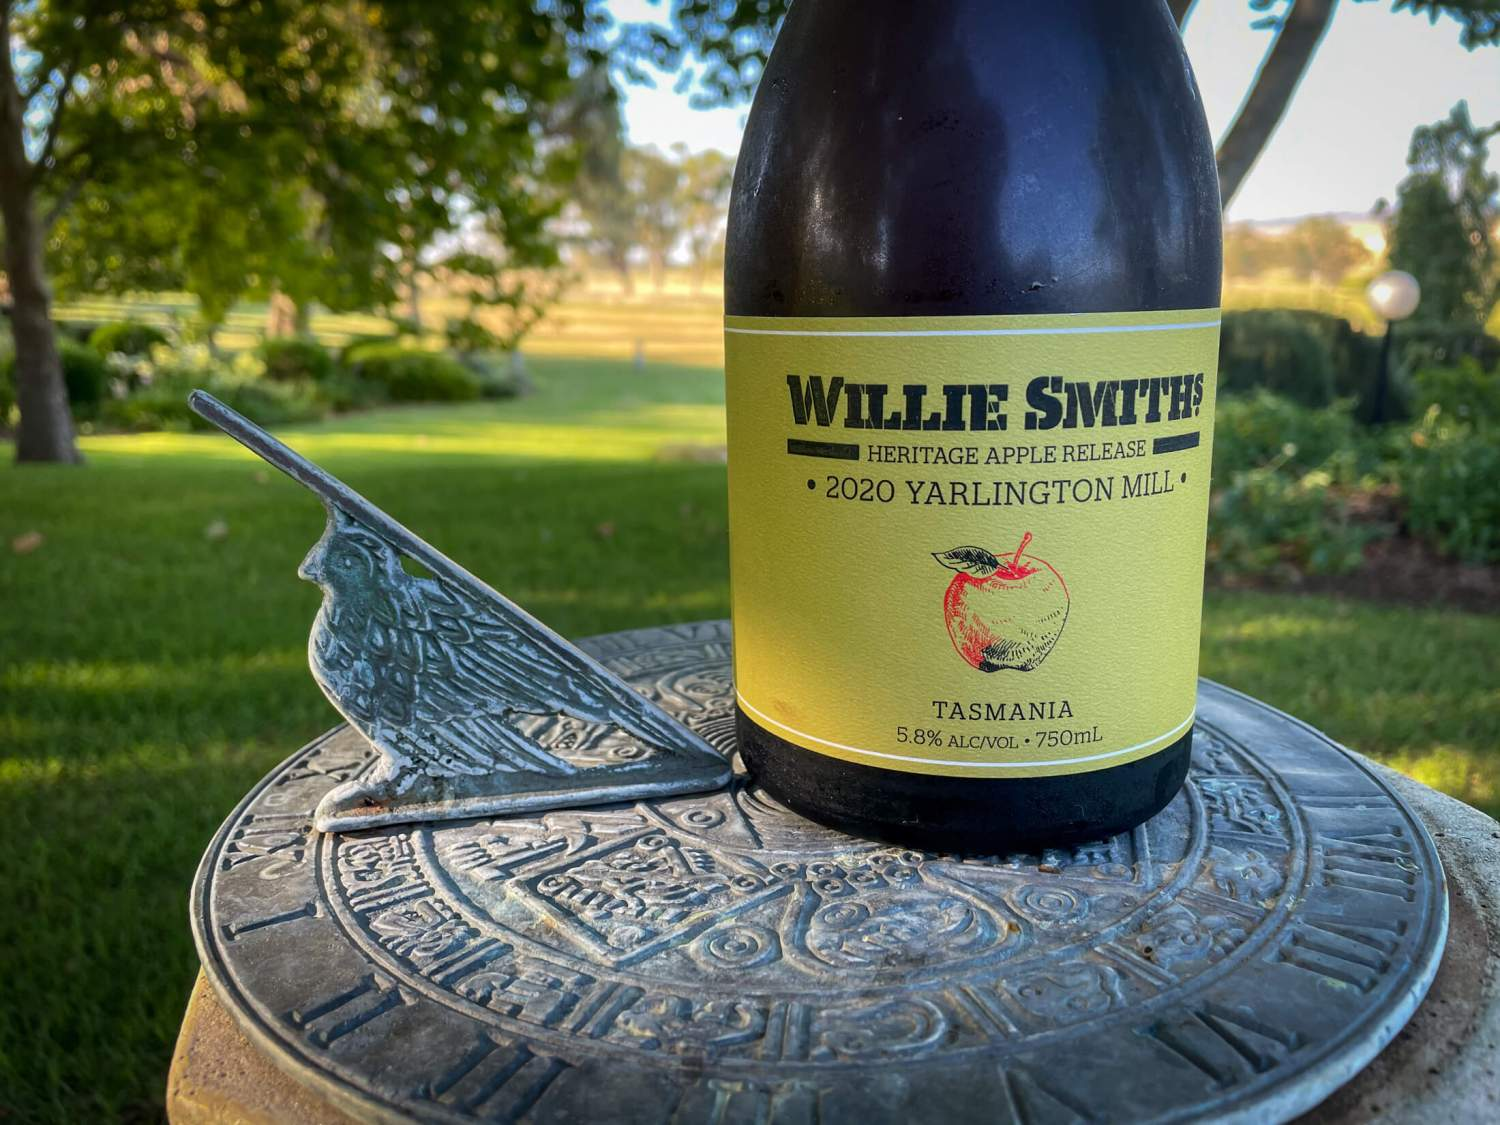 Willie Smiths 2020 Yarlington Mill Cider bottle on a sun dial in the a garden